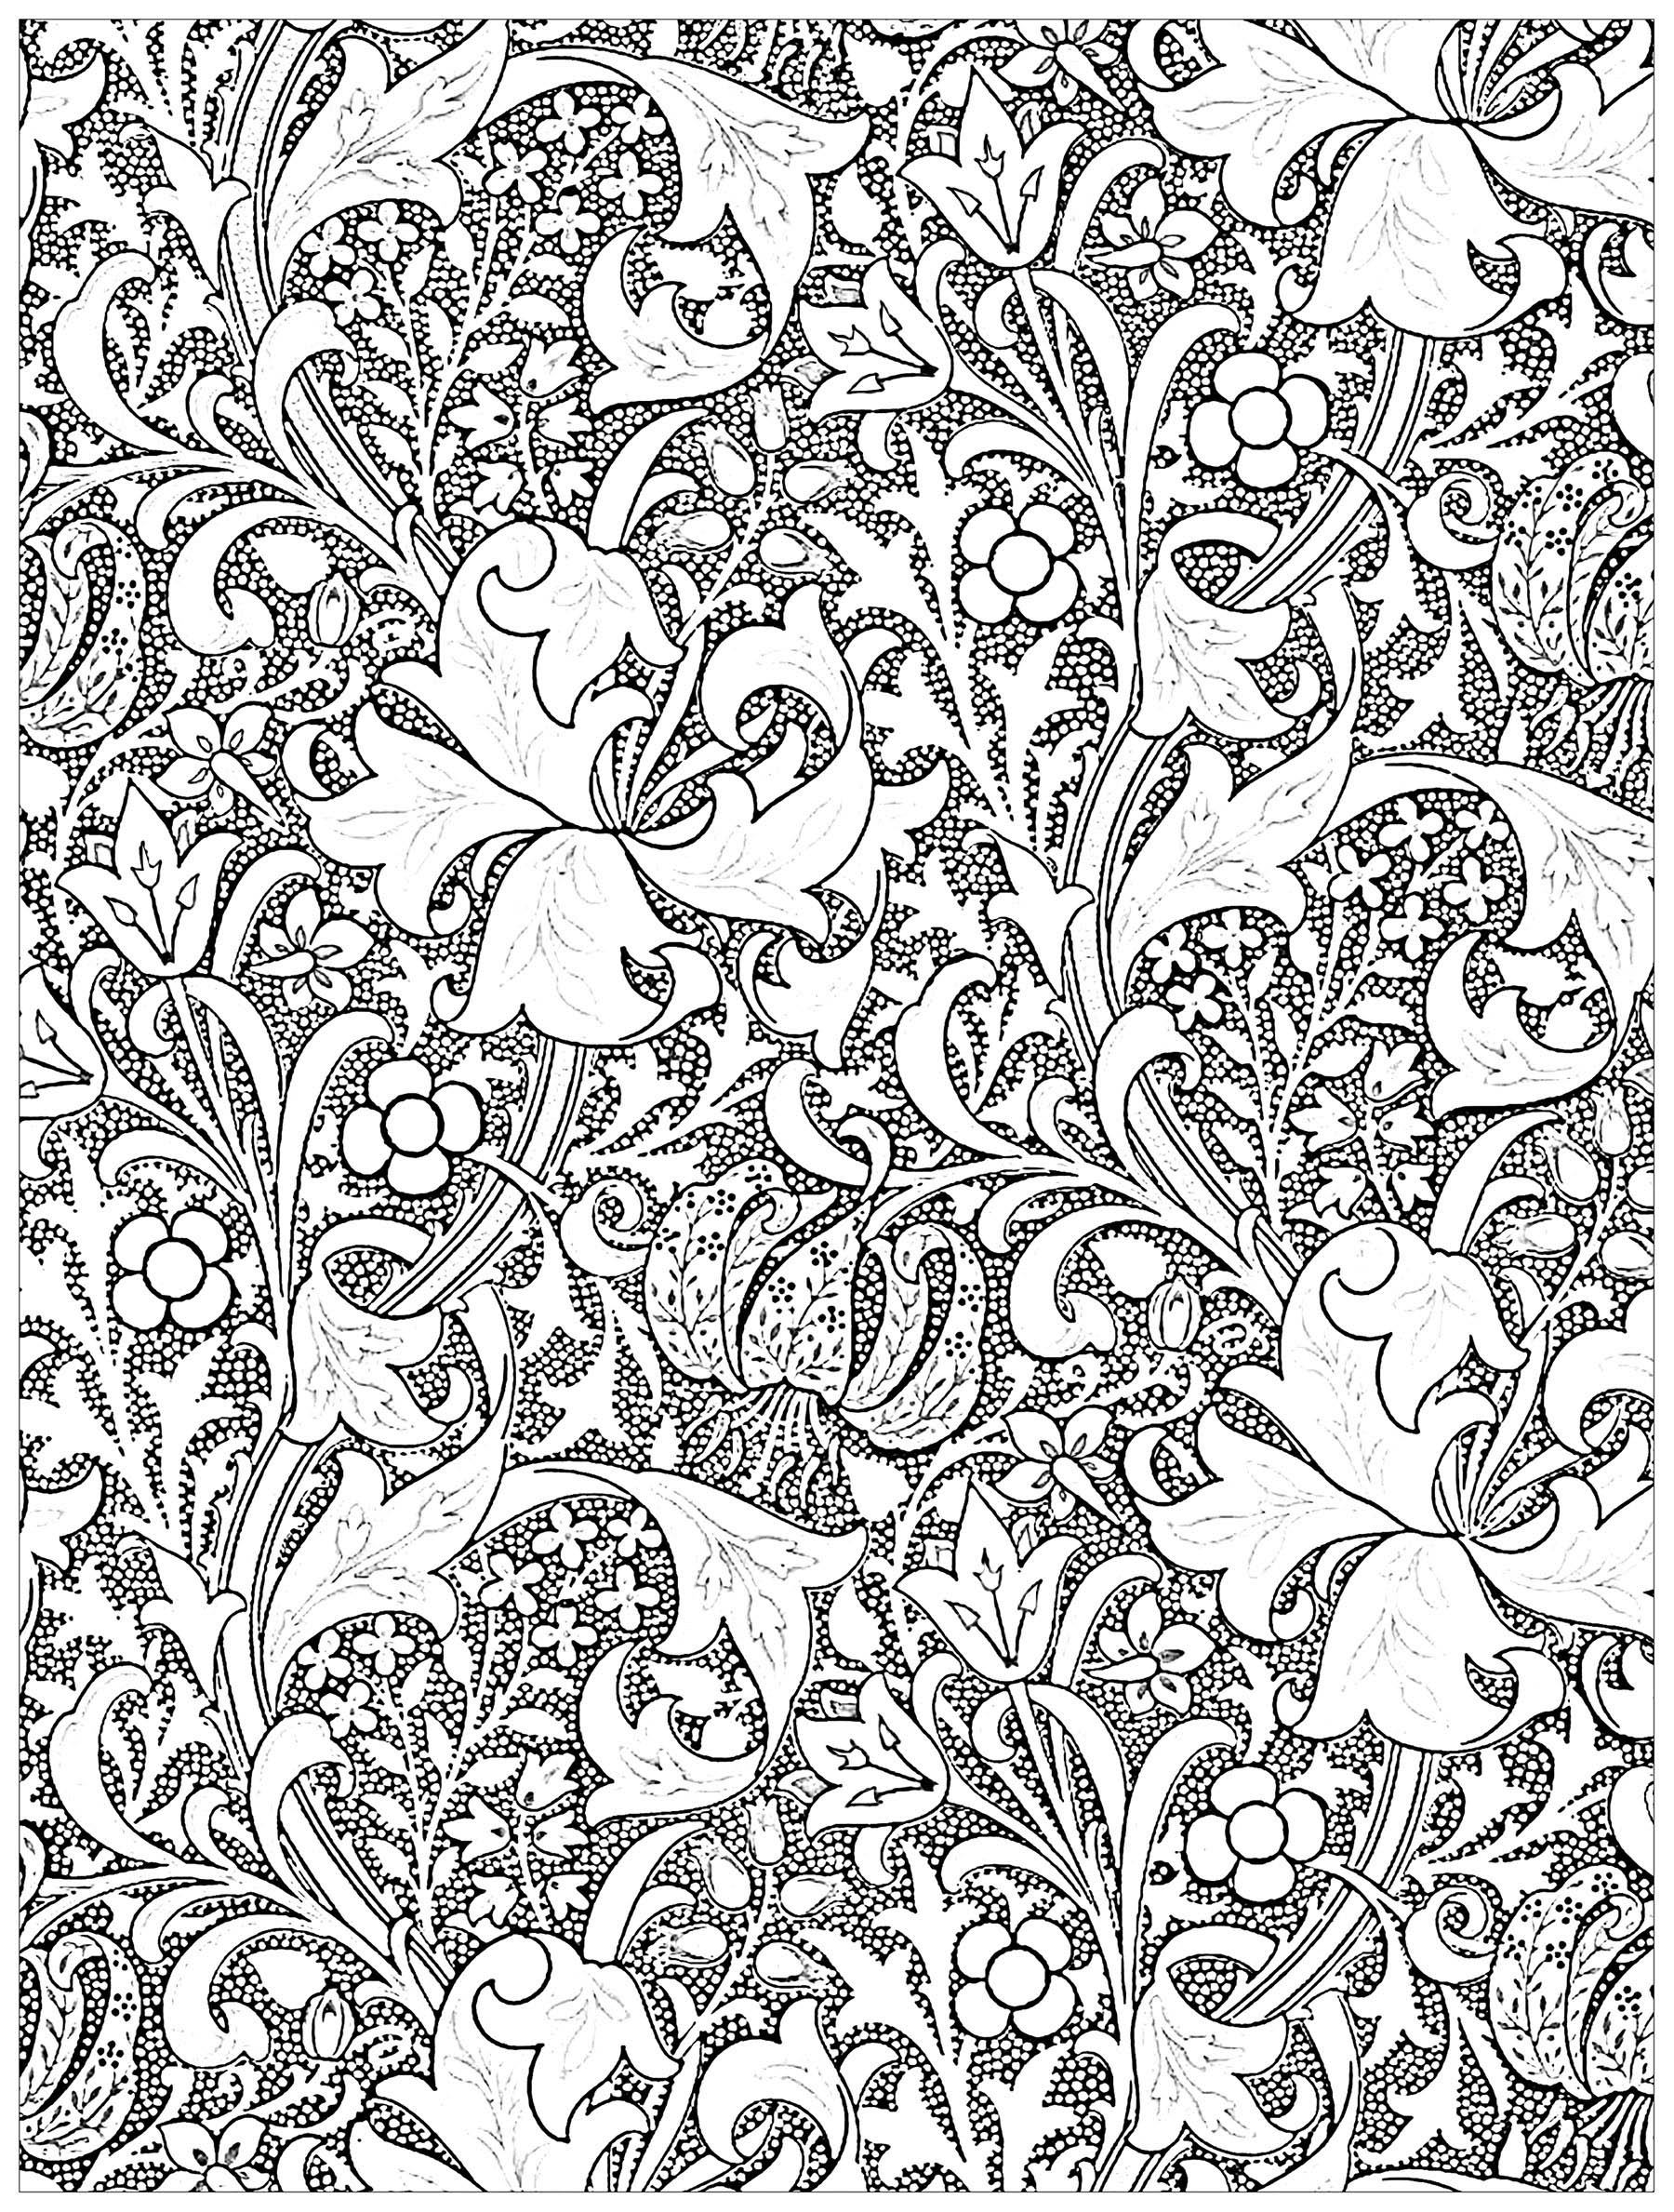 Exclusive coloring page created from textile design 'Golden Lily' by John Henry Dearle (1889). Color these entwining lily stems and tendrils ...